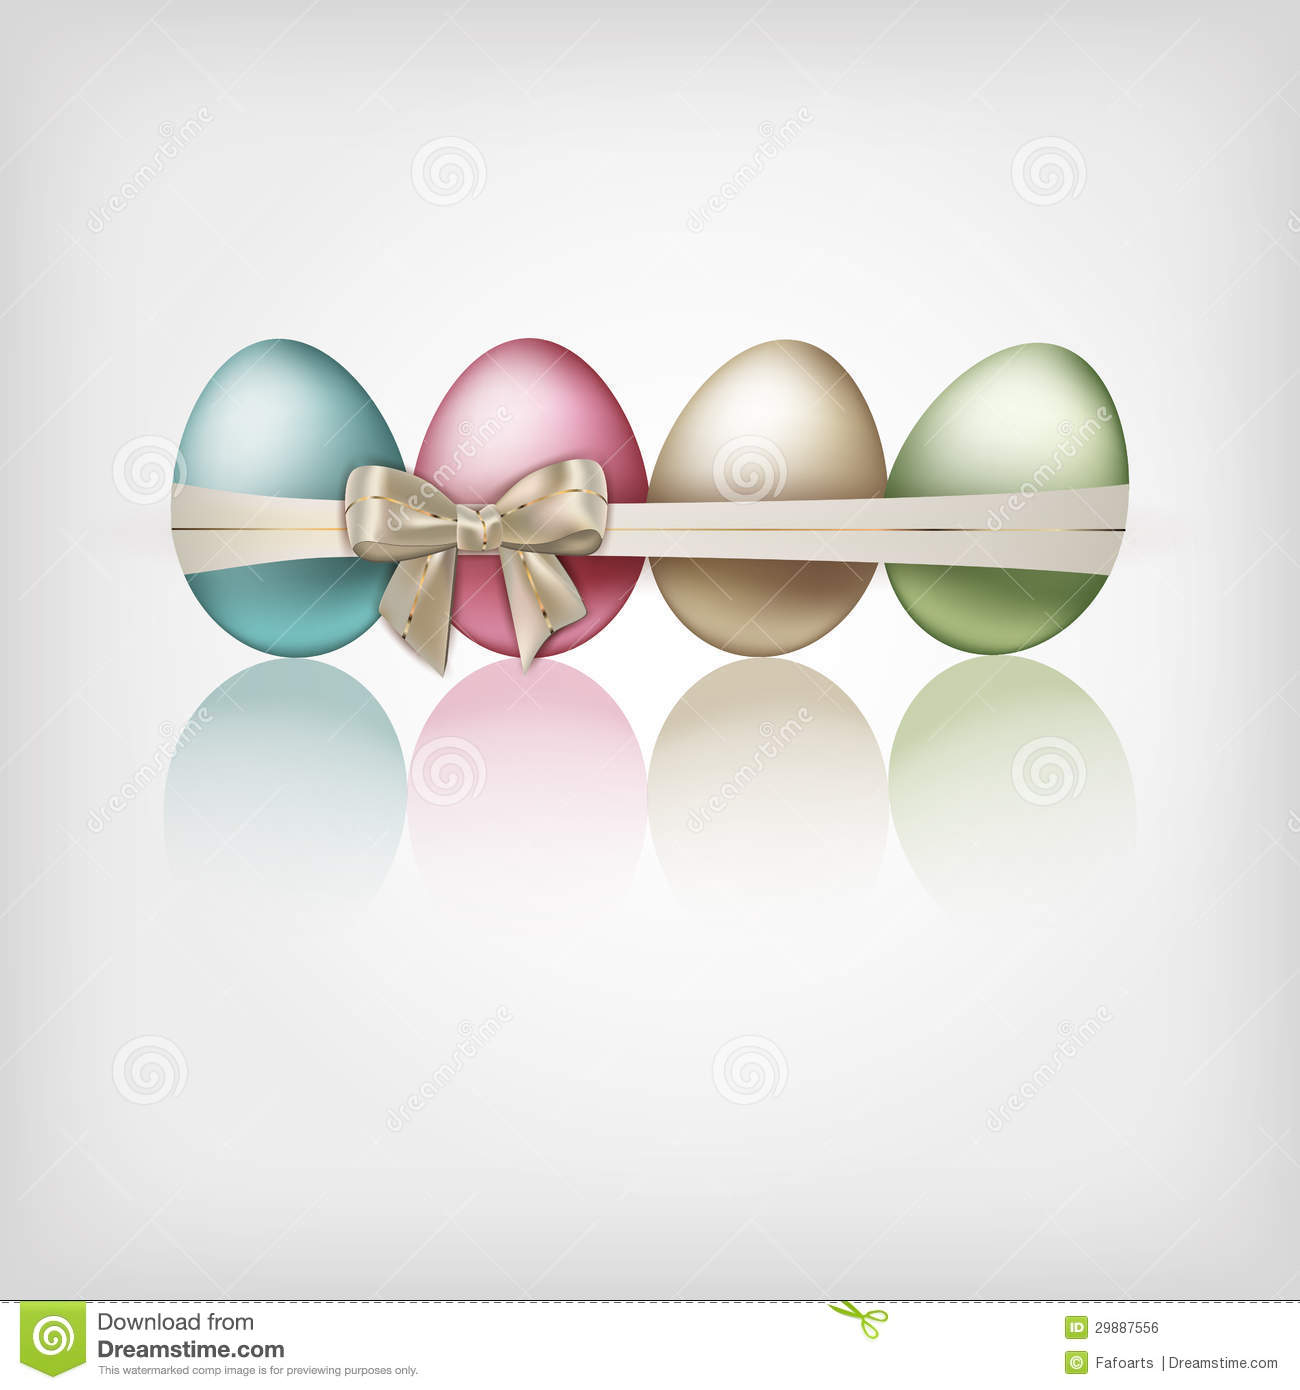 Elegant easter clipart clip transparent library Easter Card Royalty Free Stock Image - Image: 29887556 clip transparent library